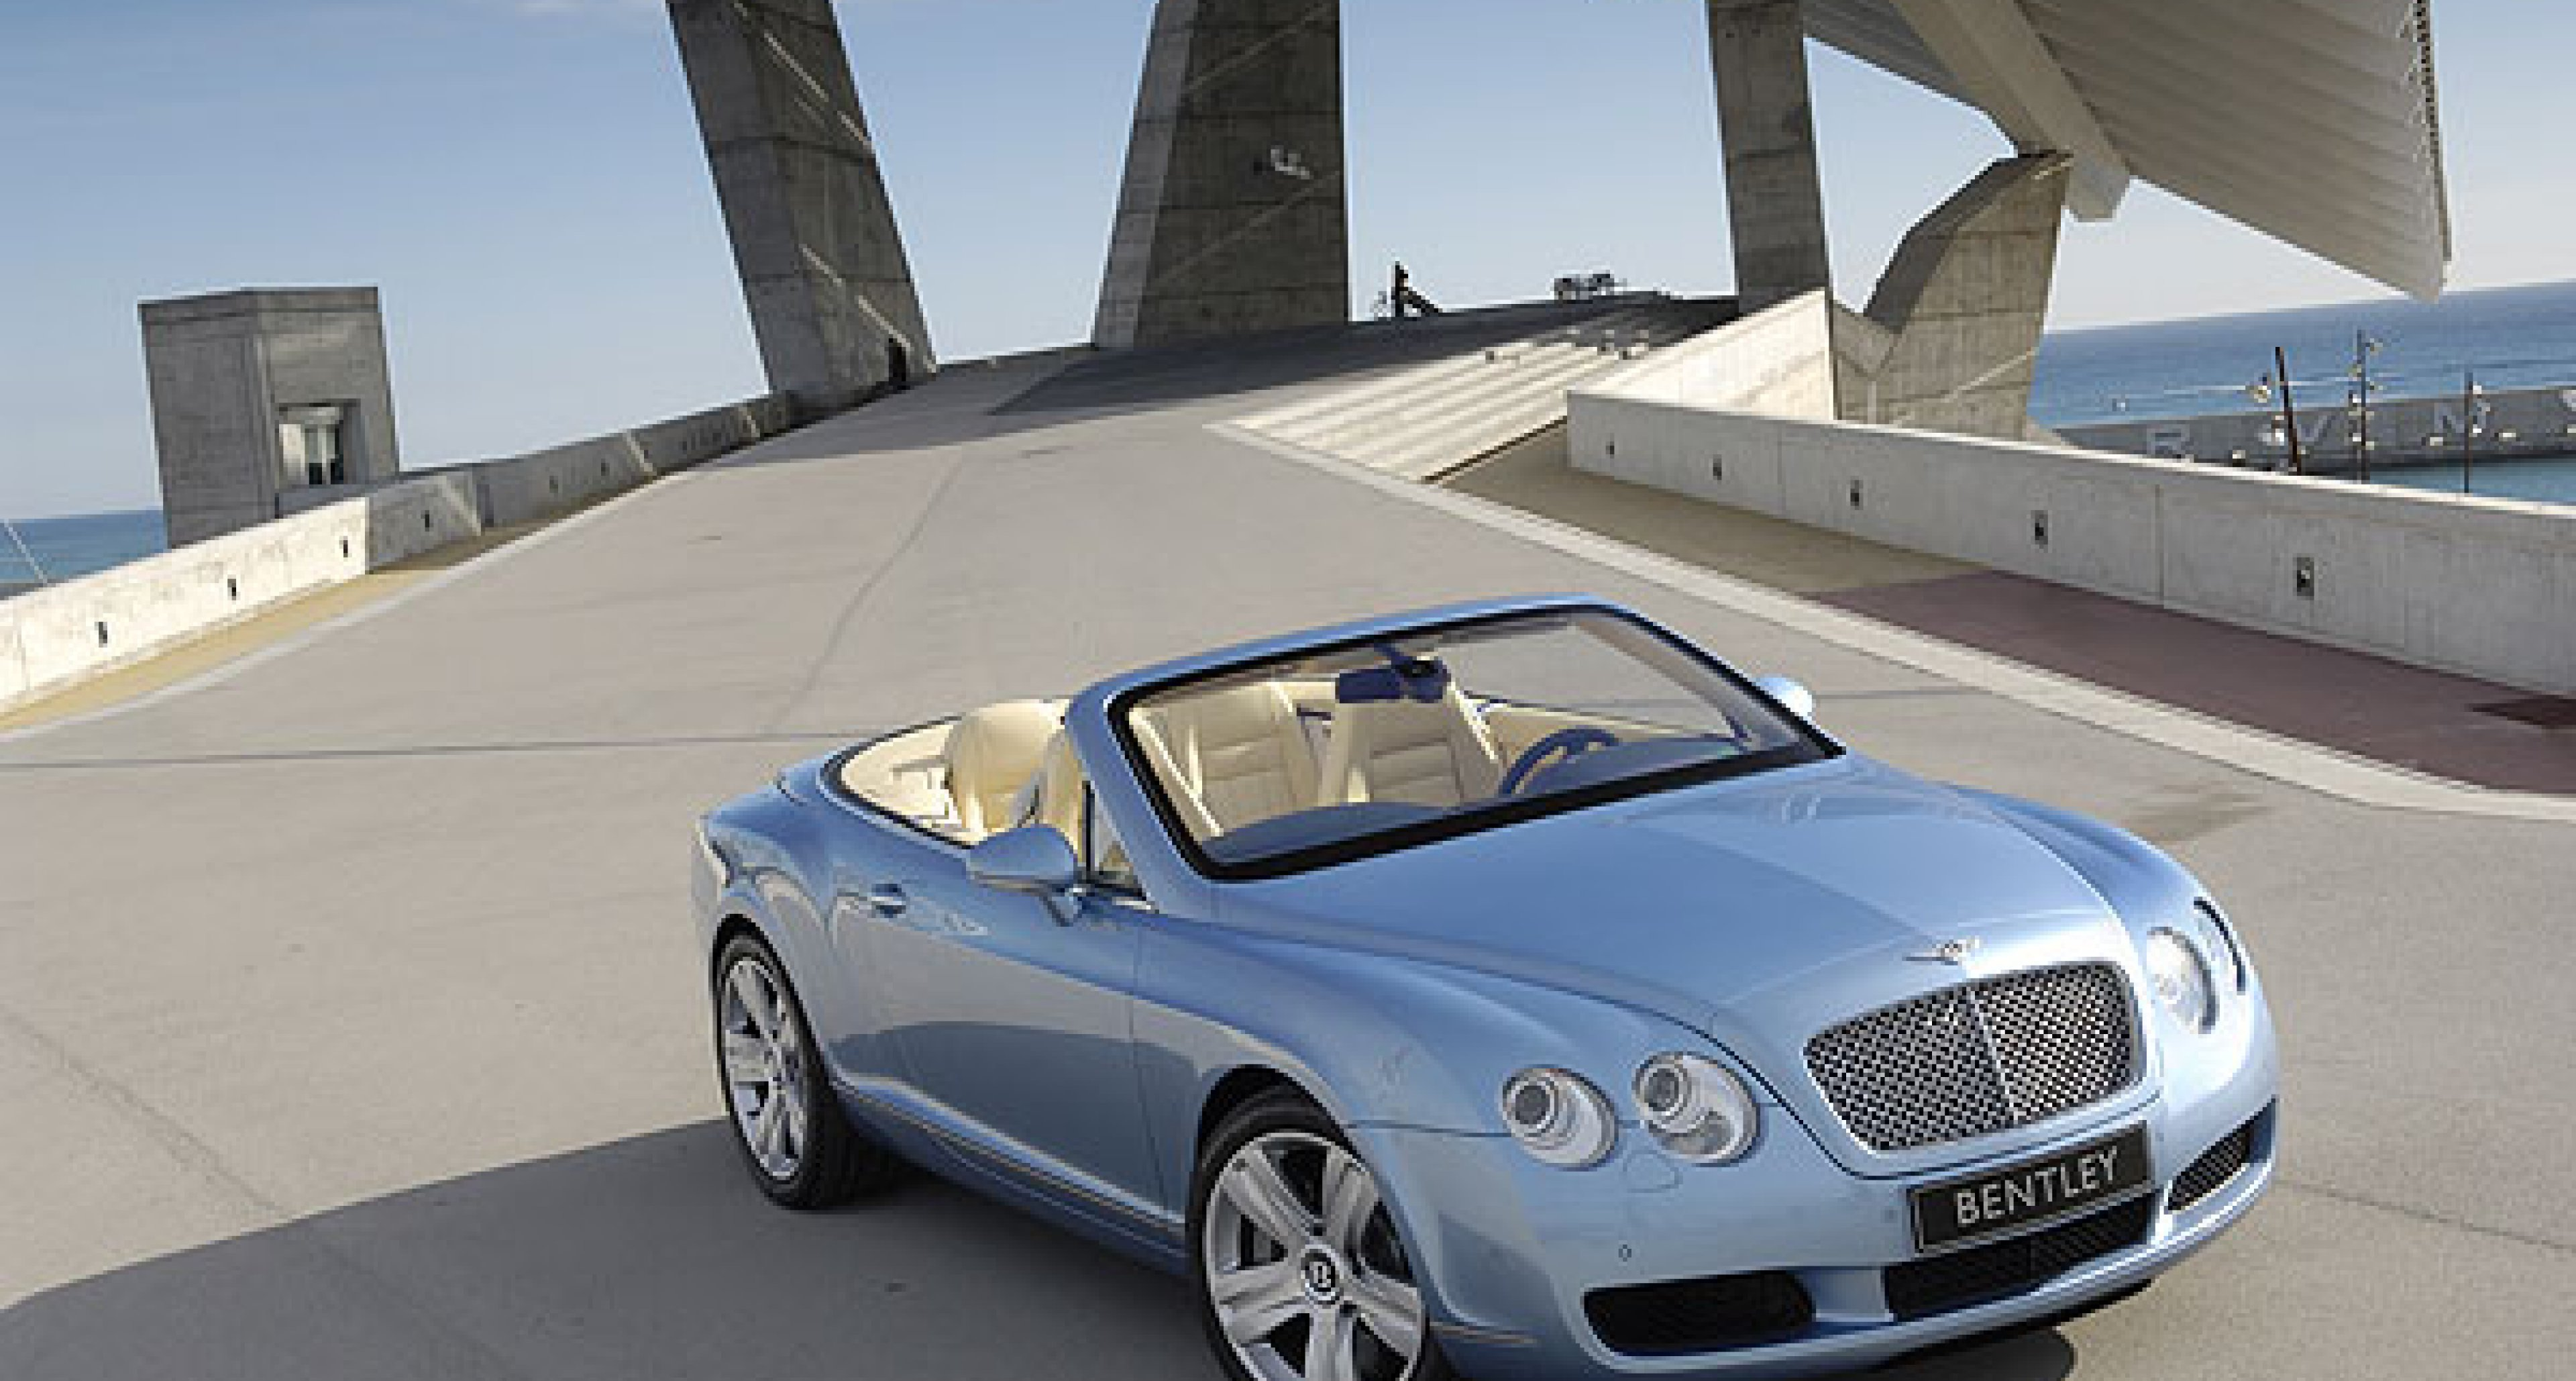 Bentley Continental GTC in New York